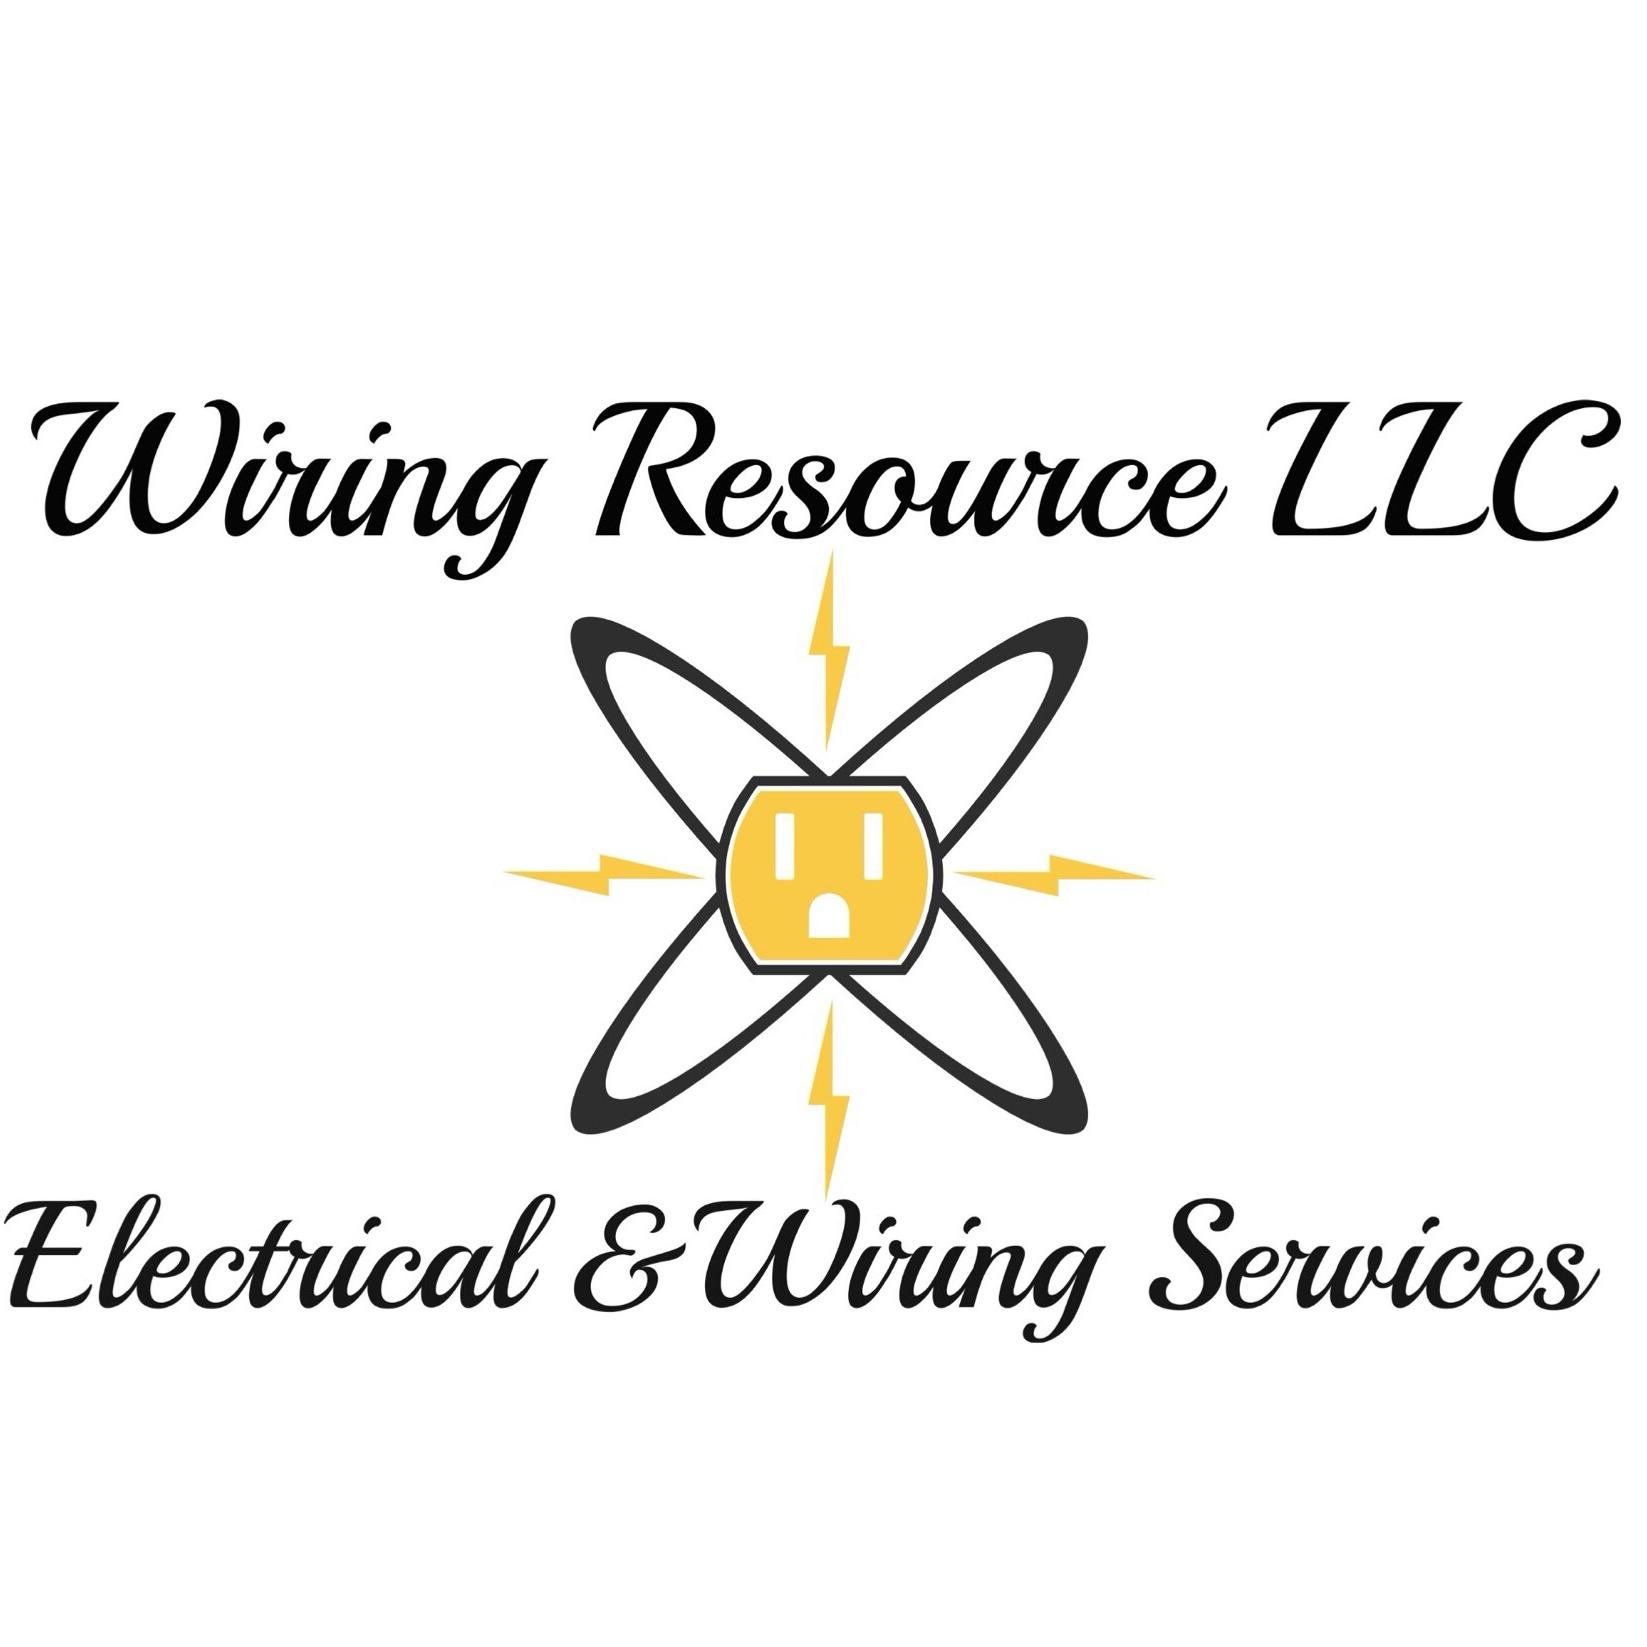 Wiring Resource LLC